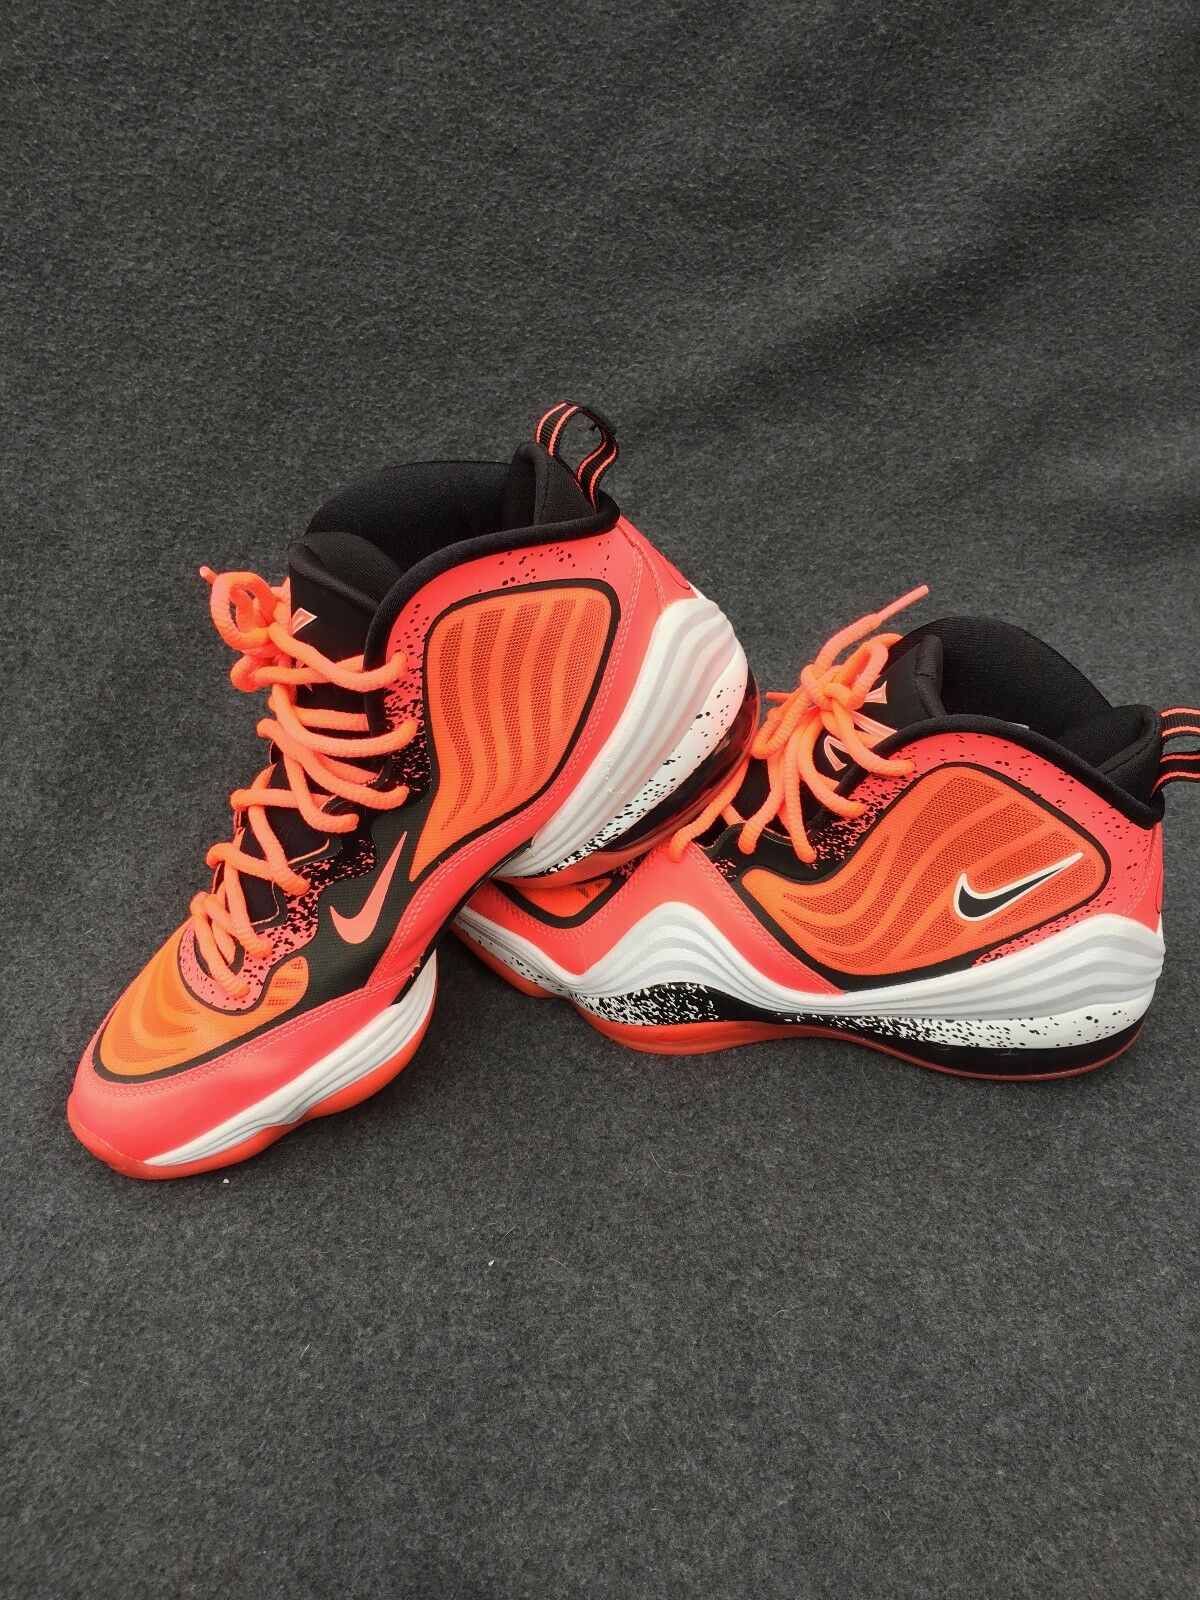 Nike Air Penny 5 Atomic Red mens size 9